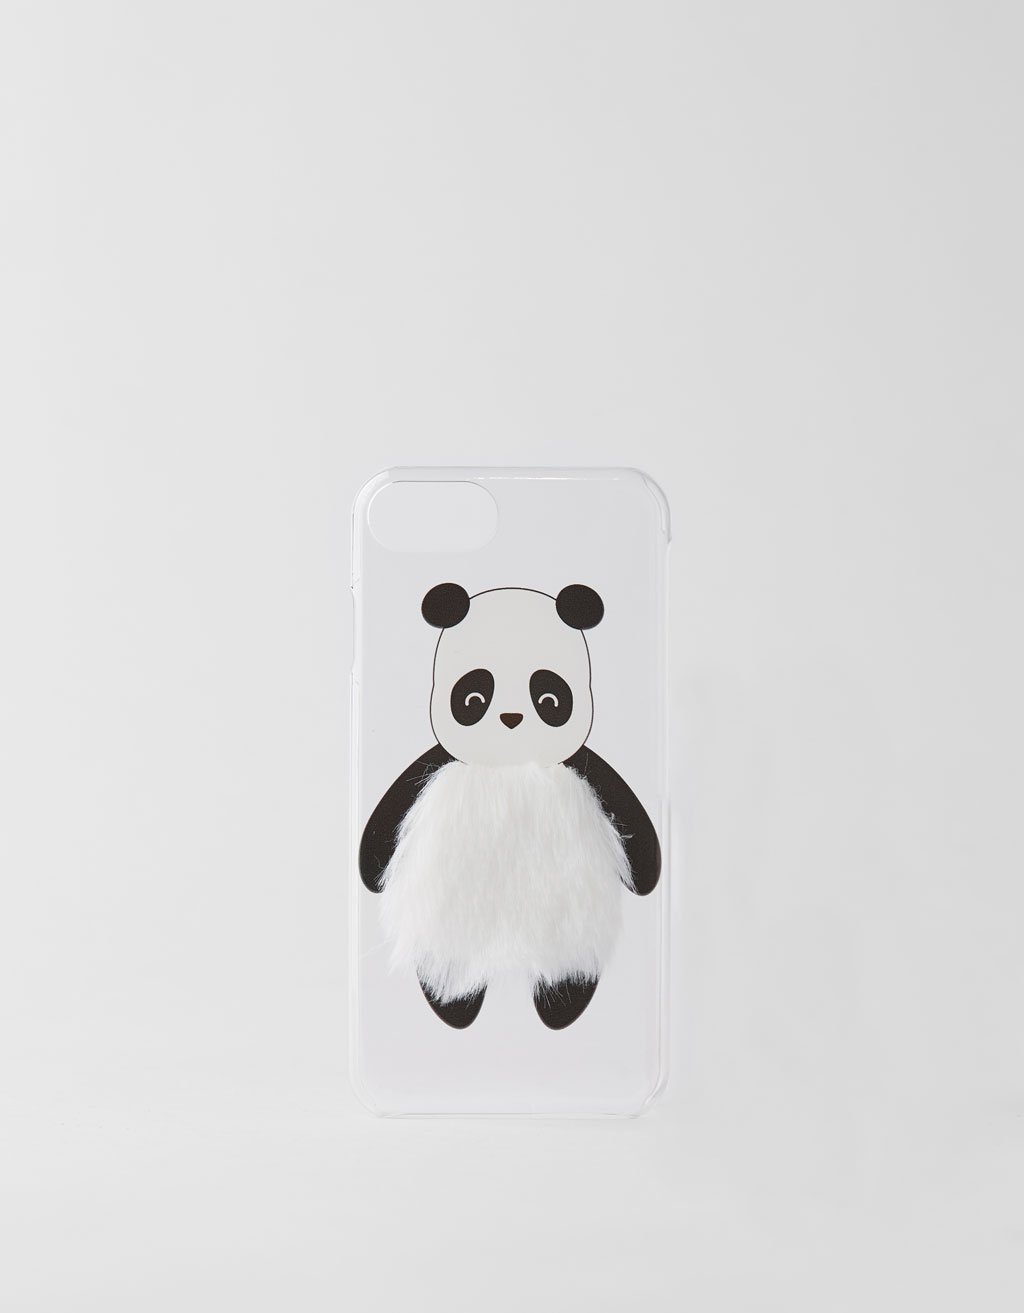 Maska Panda za iPhone 6 / 6S / 7 / 8